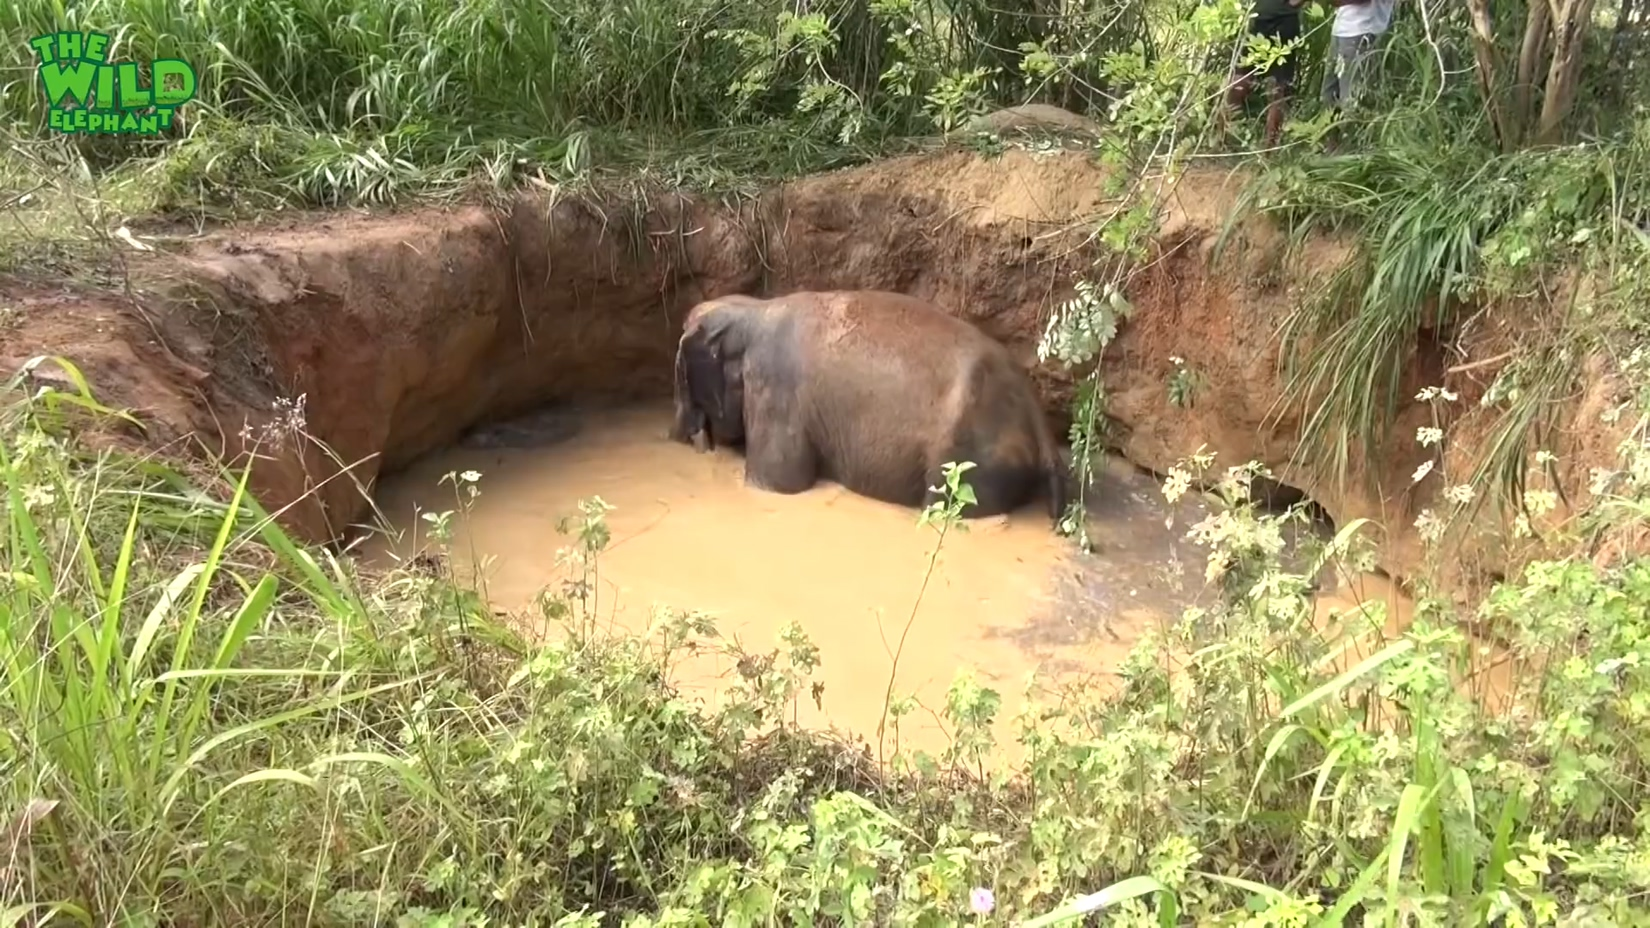 Elephant That Fell Into A Muddy Well A Happy Elephant is worth all the trouble